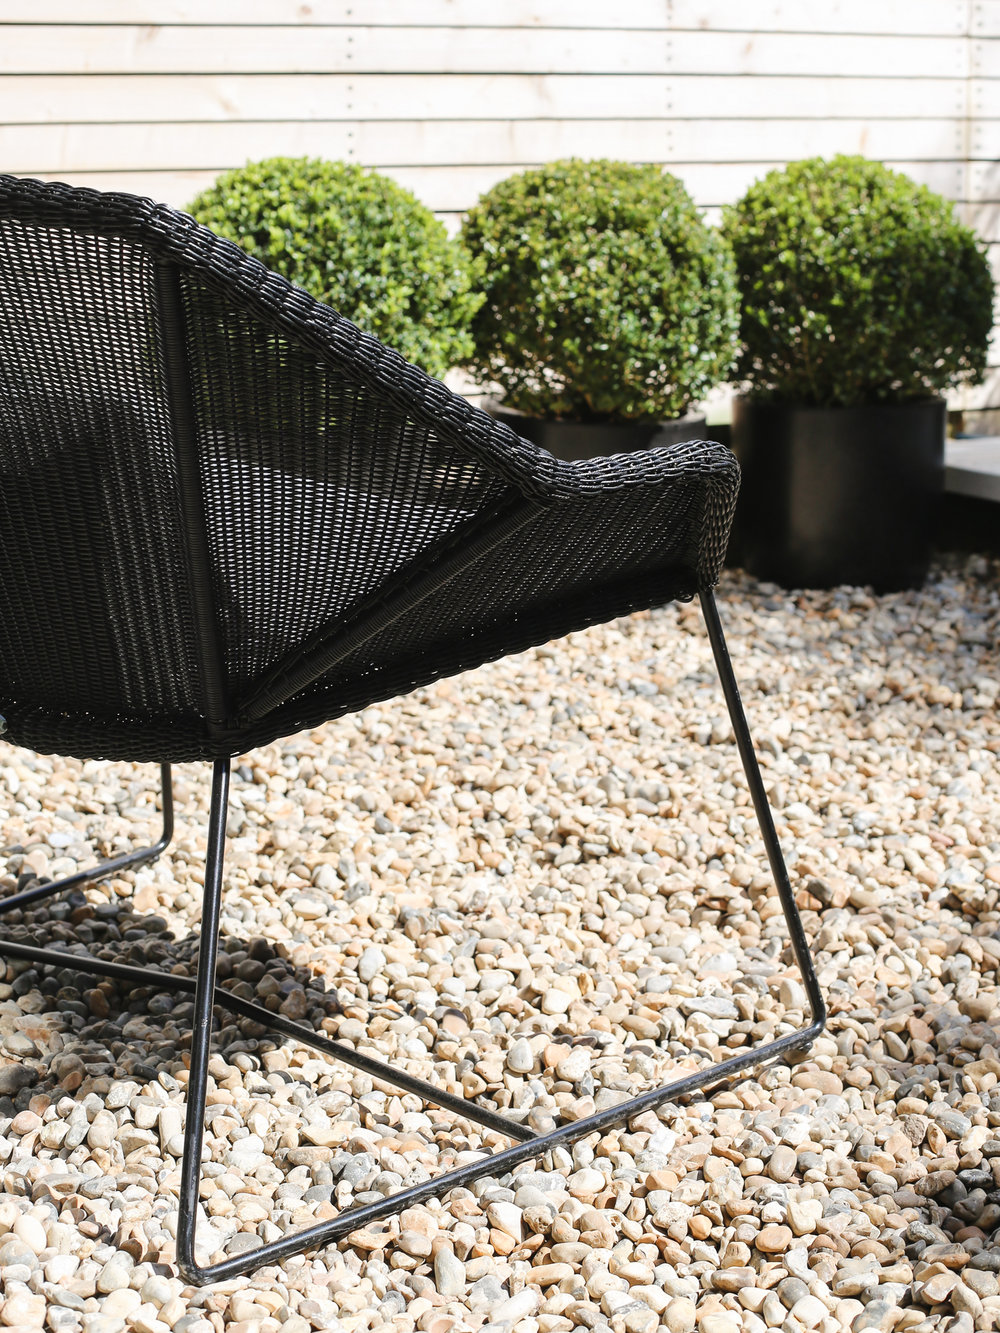 Black rattan Danish garden chair by Cane-line | Design Hunter